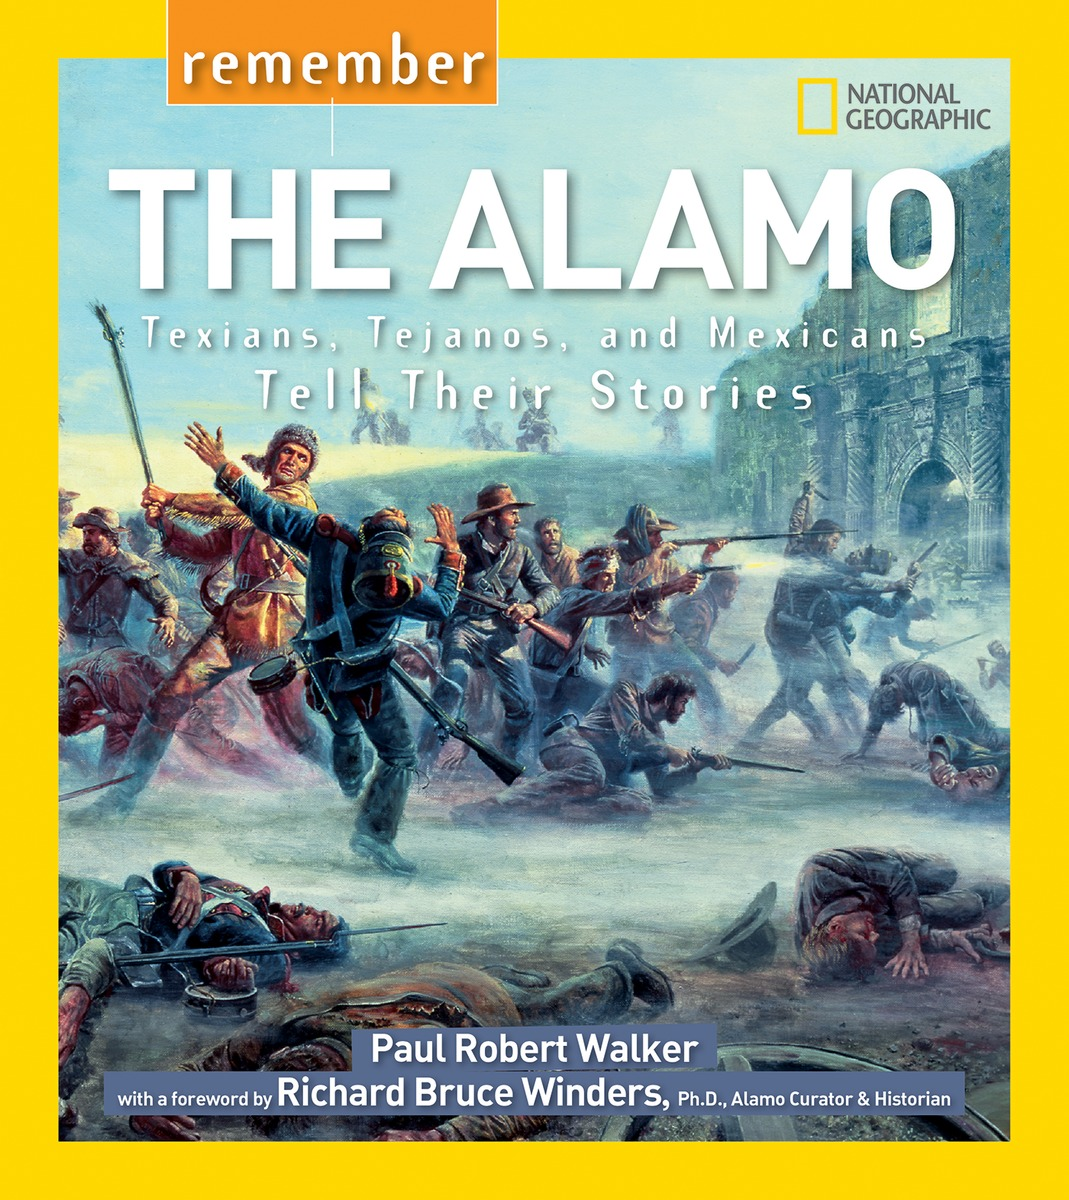 REMEMBER THE ALAMO from evidence to action